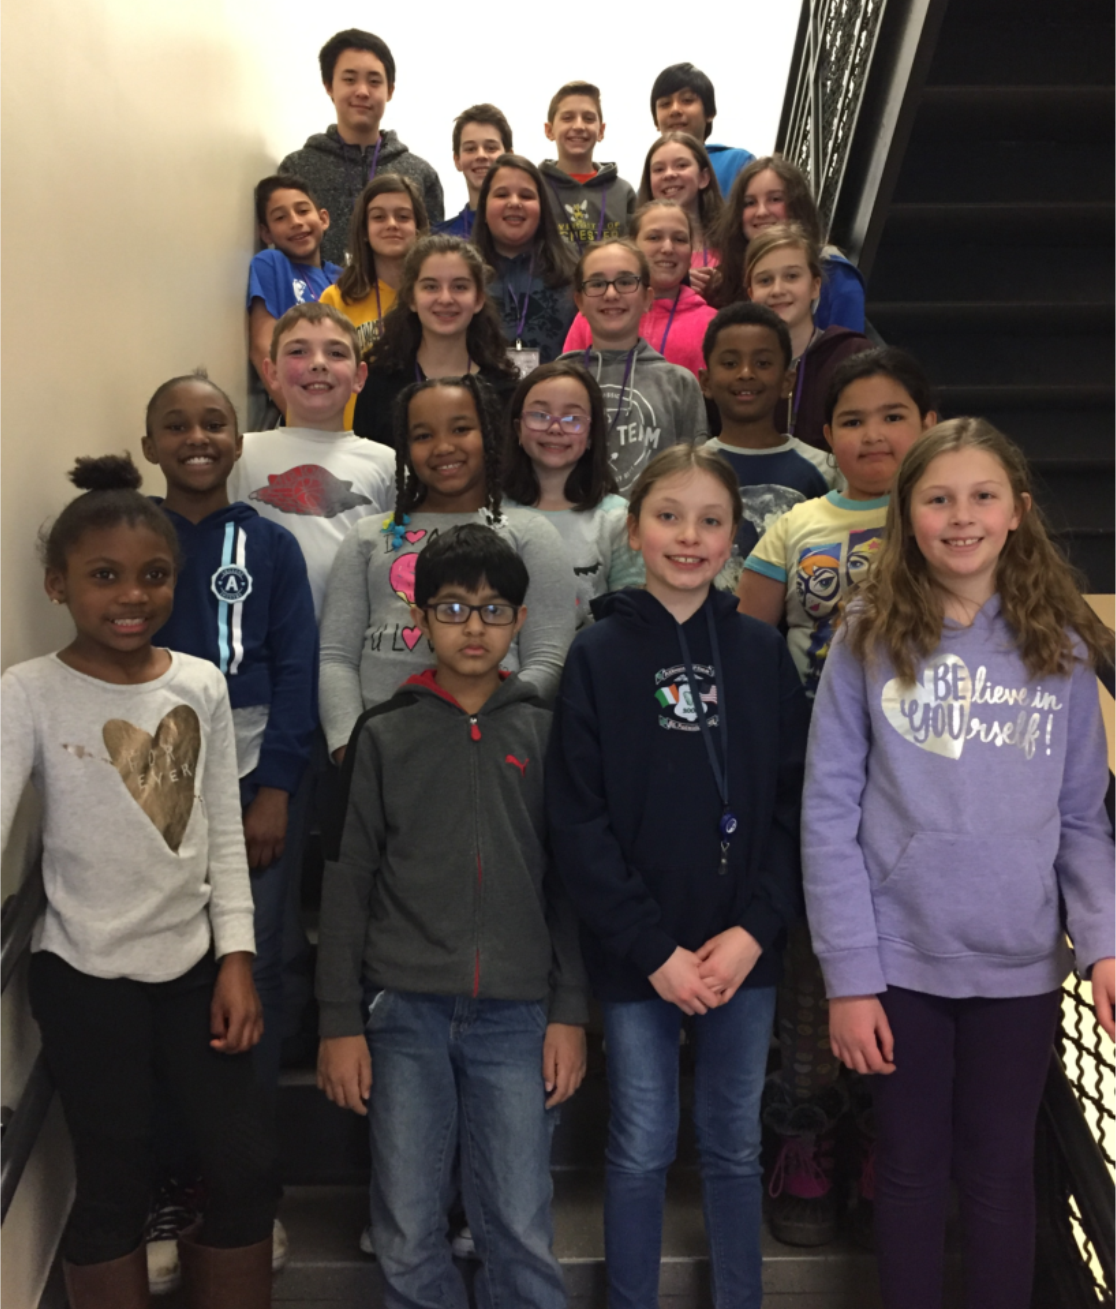 A large group of students standing on a staircase smiling for a group picture